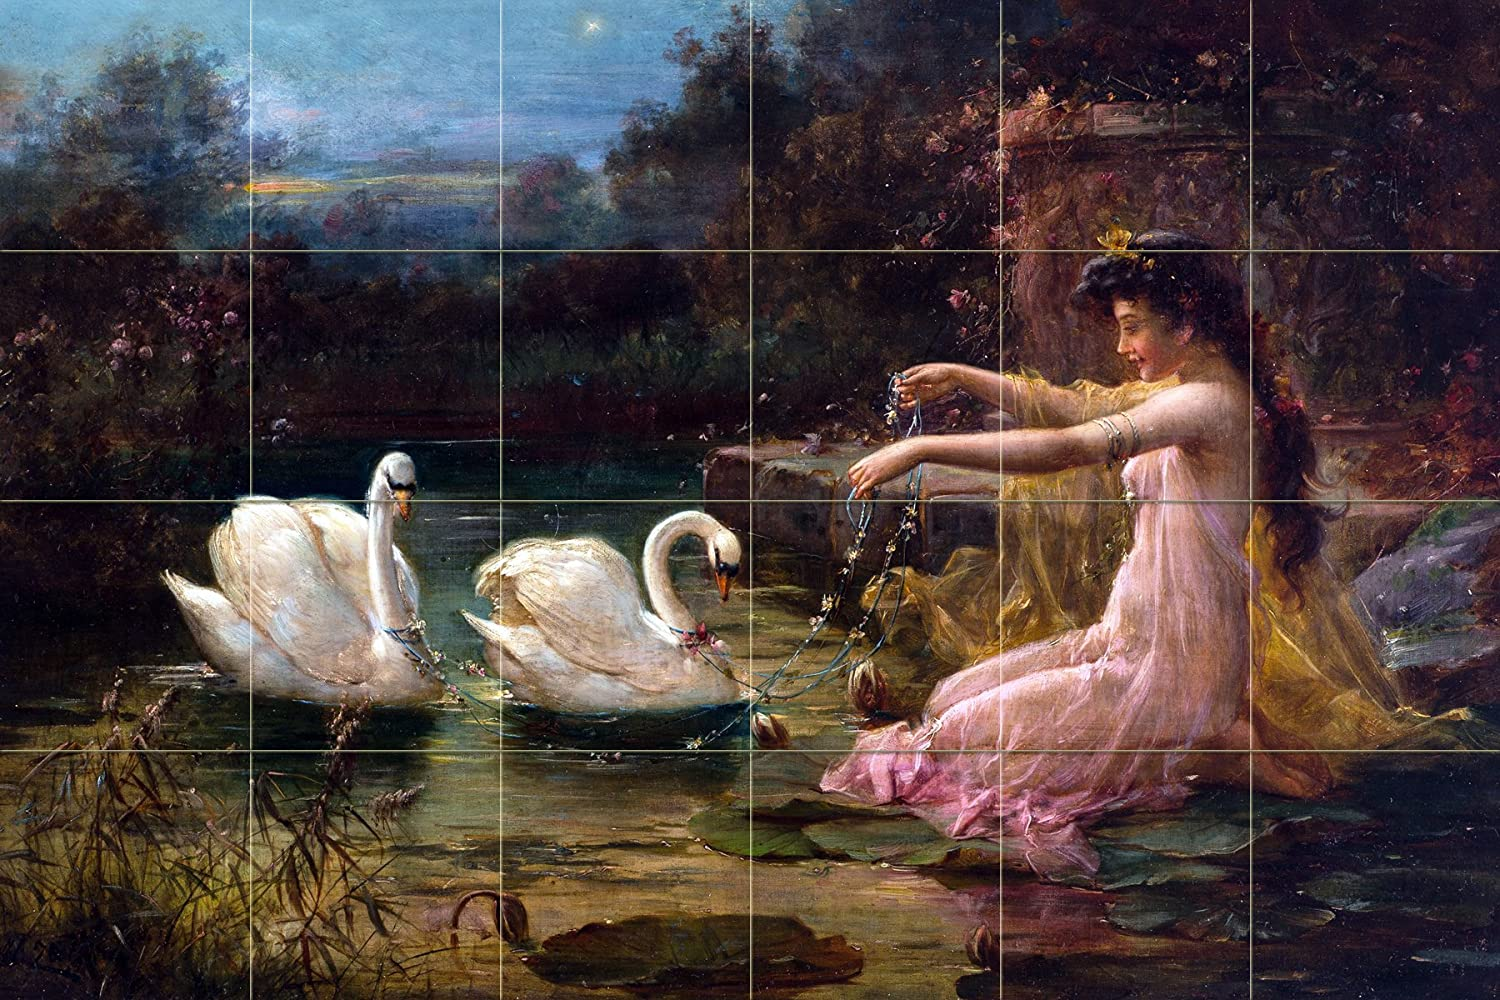 Lady at the swan lake h zatzka tile mural kitchen for Ceramic mural artists